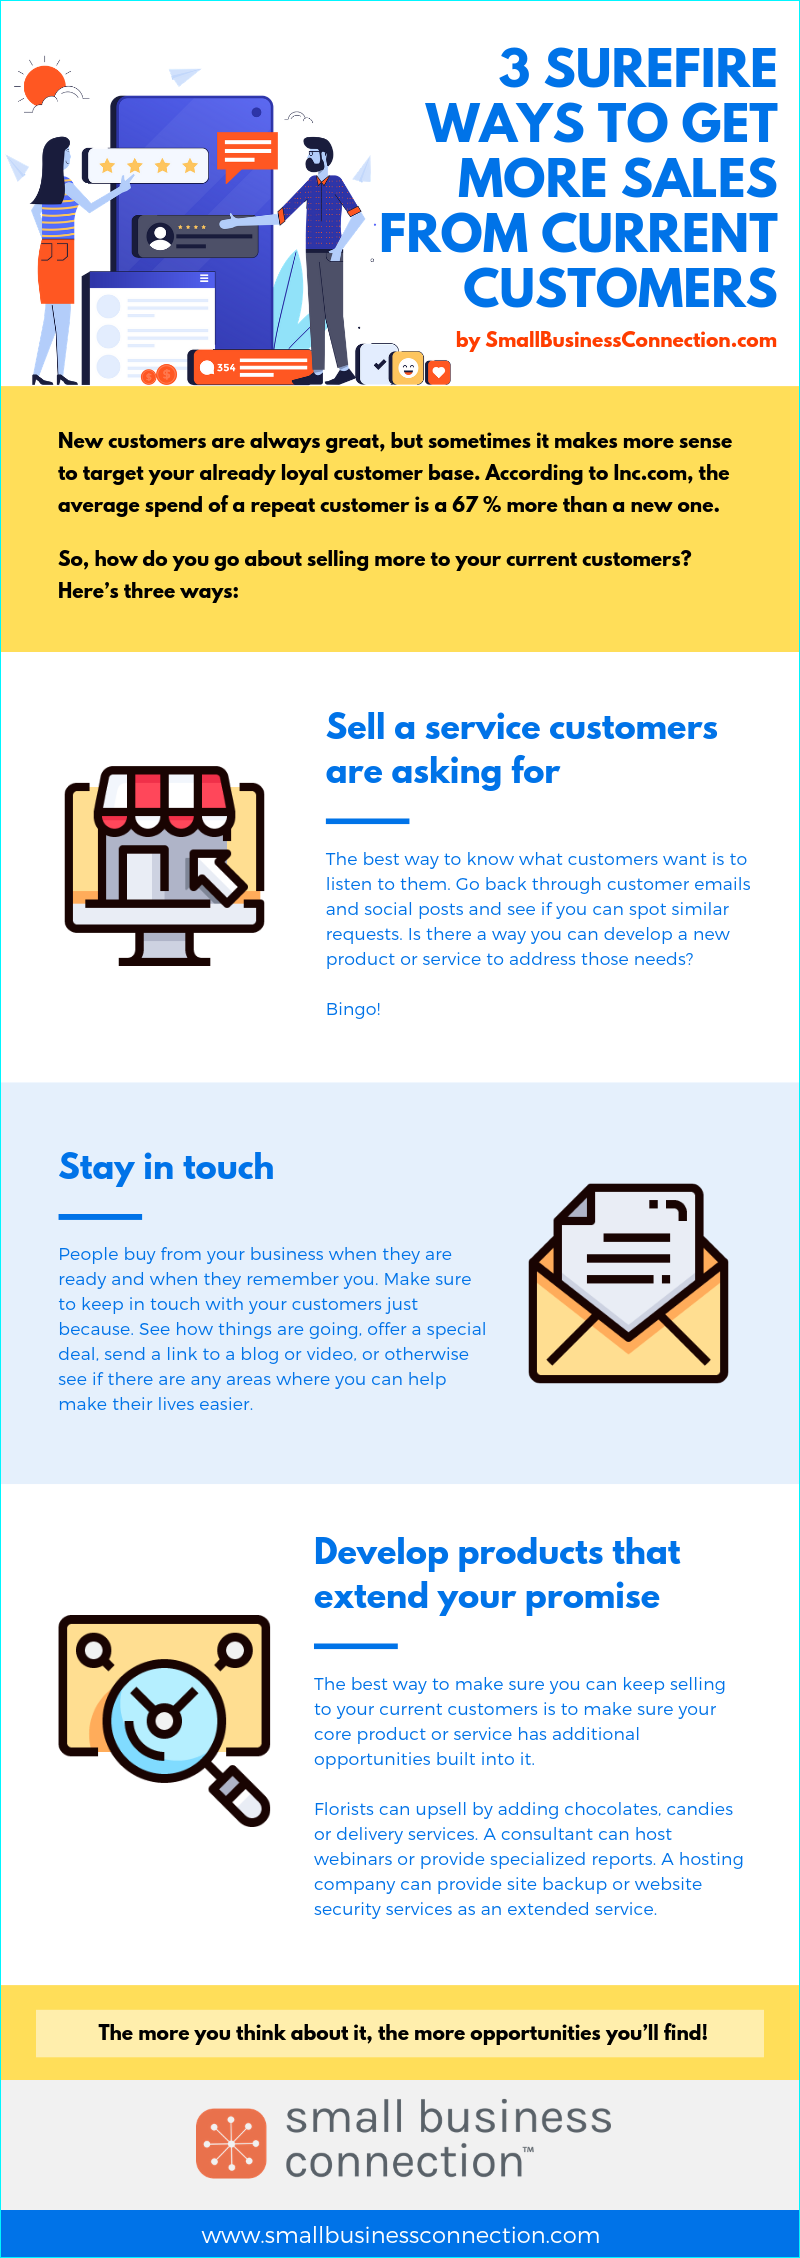 Infographic: 3 Surefire Ways to Get More Sales From Current Customers